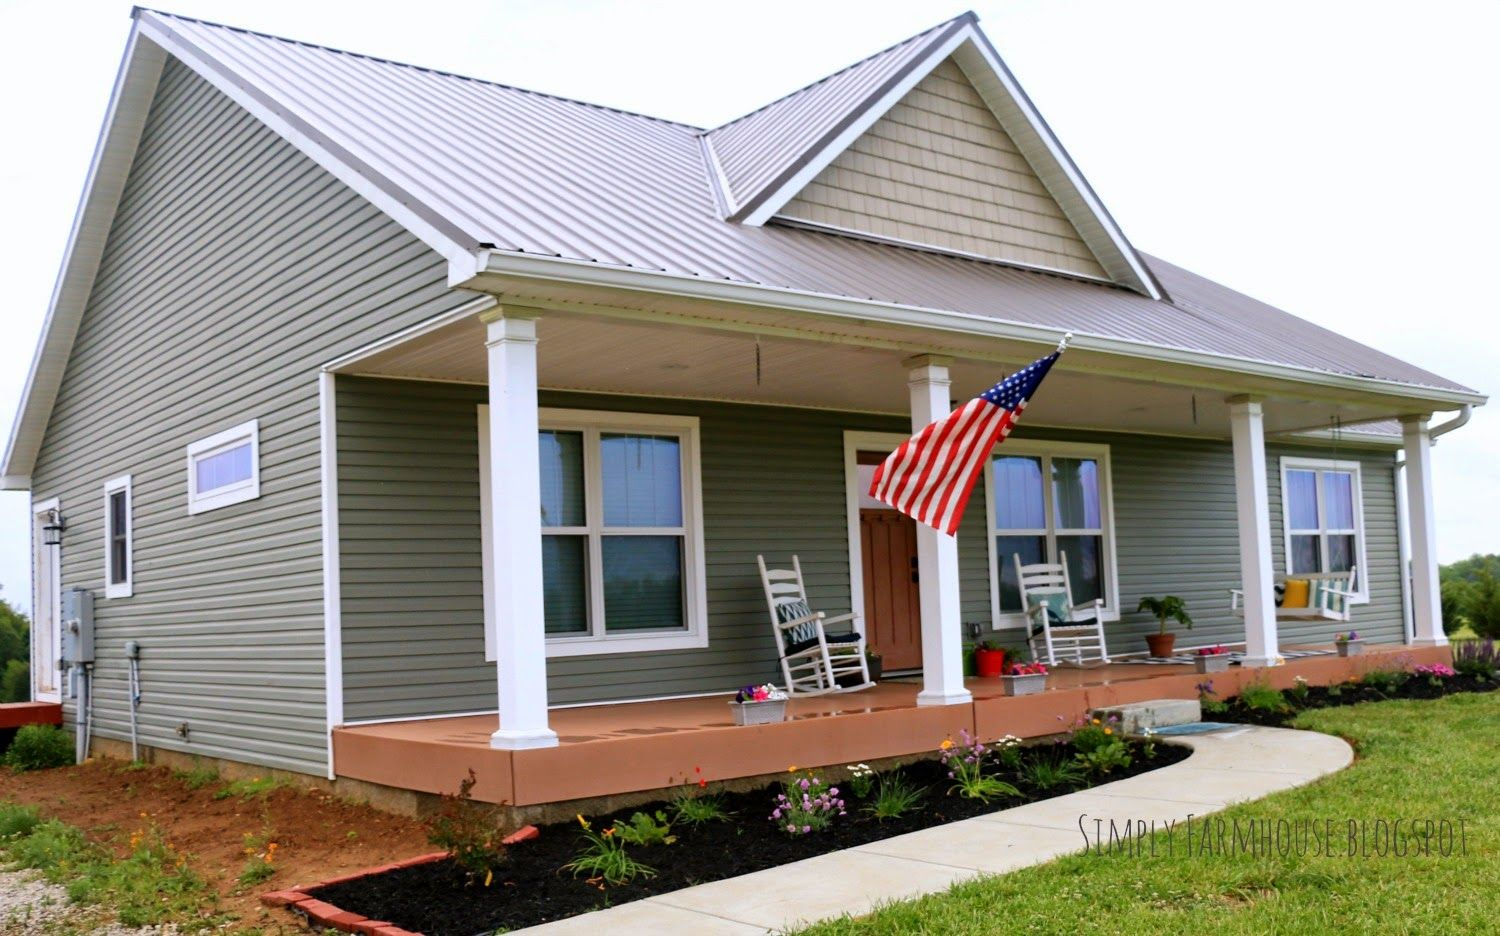 Simply Farmhouse: Our House Plan | New House in 2019 ...